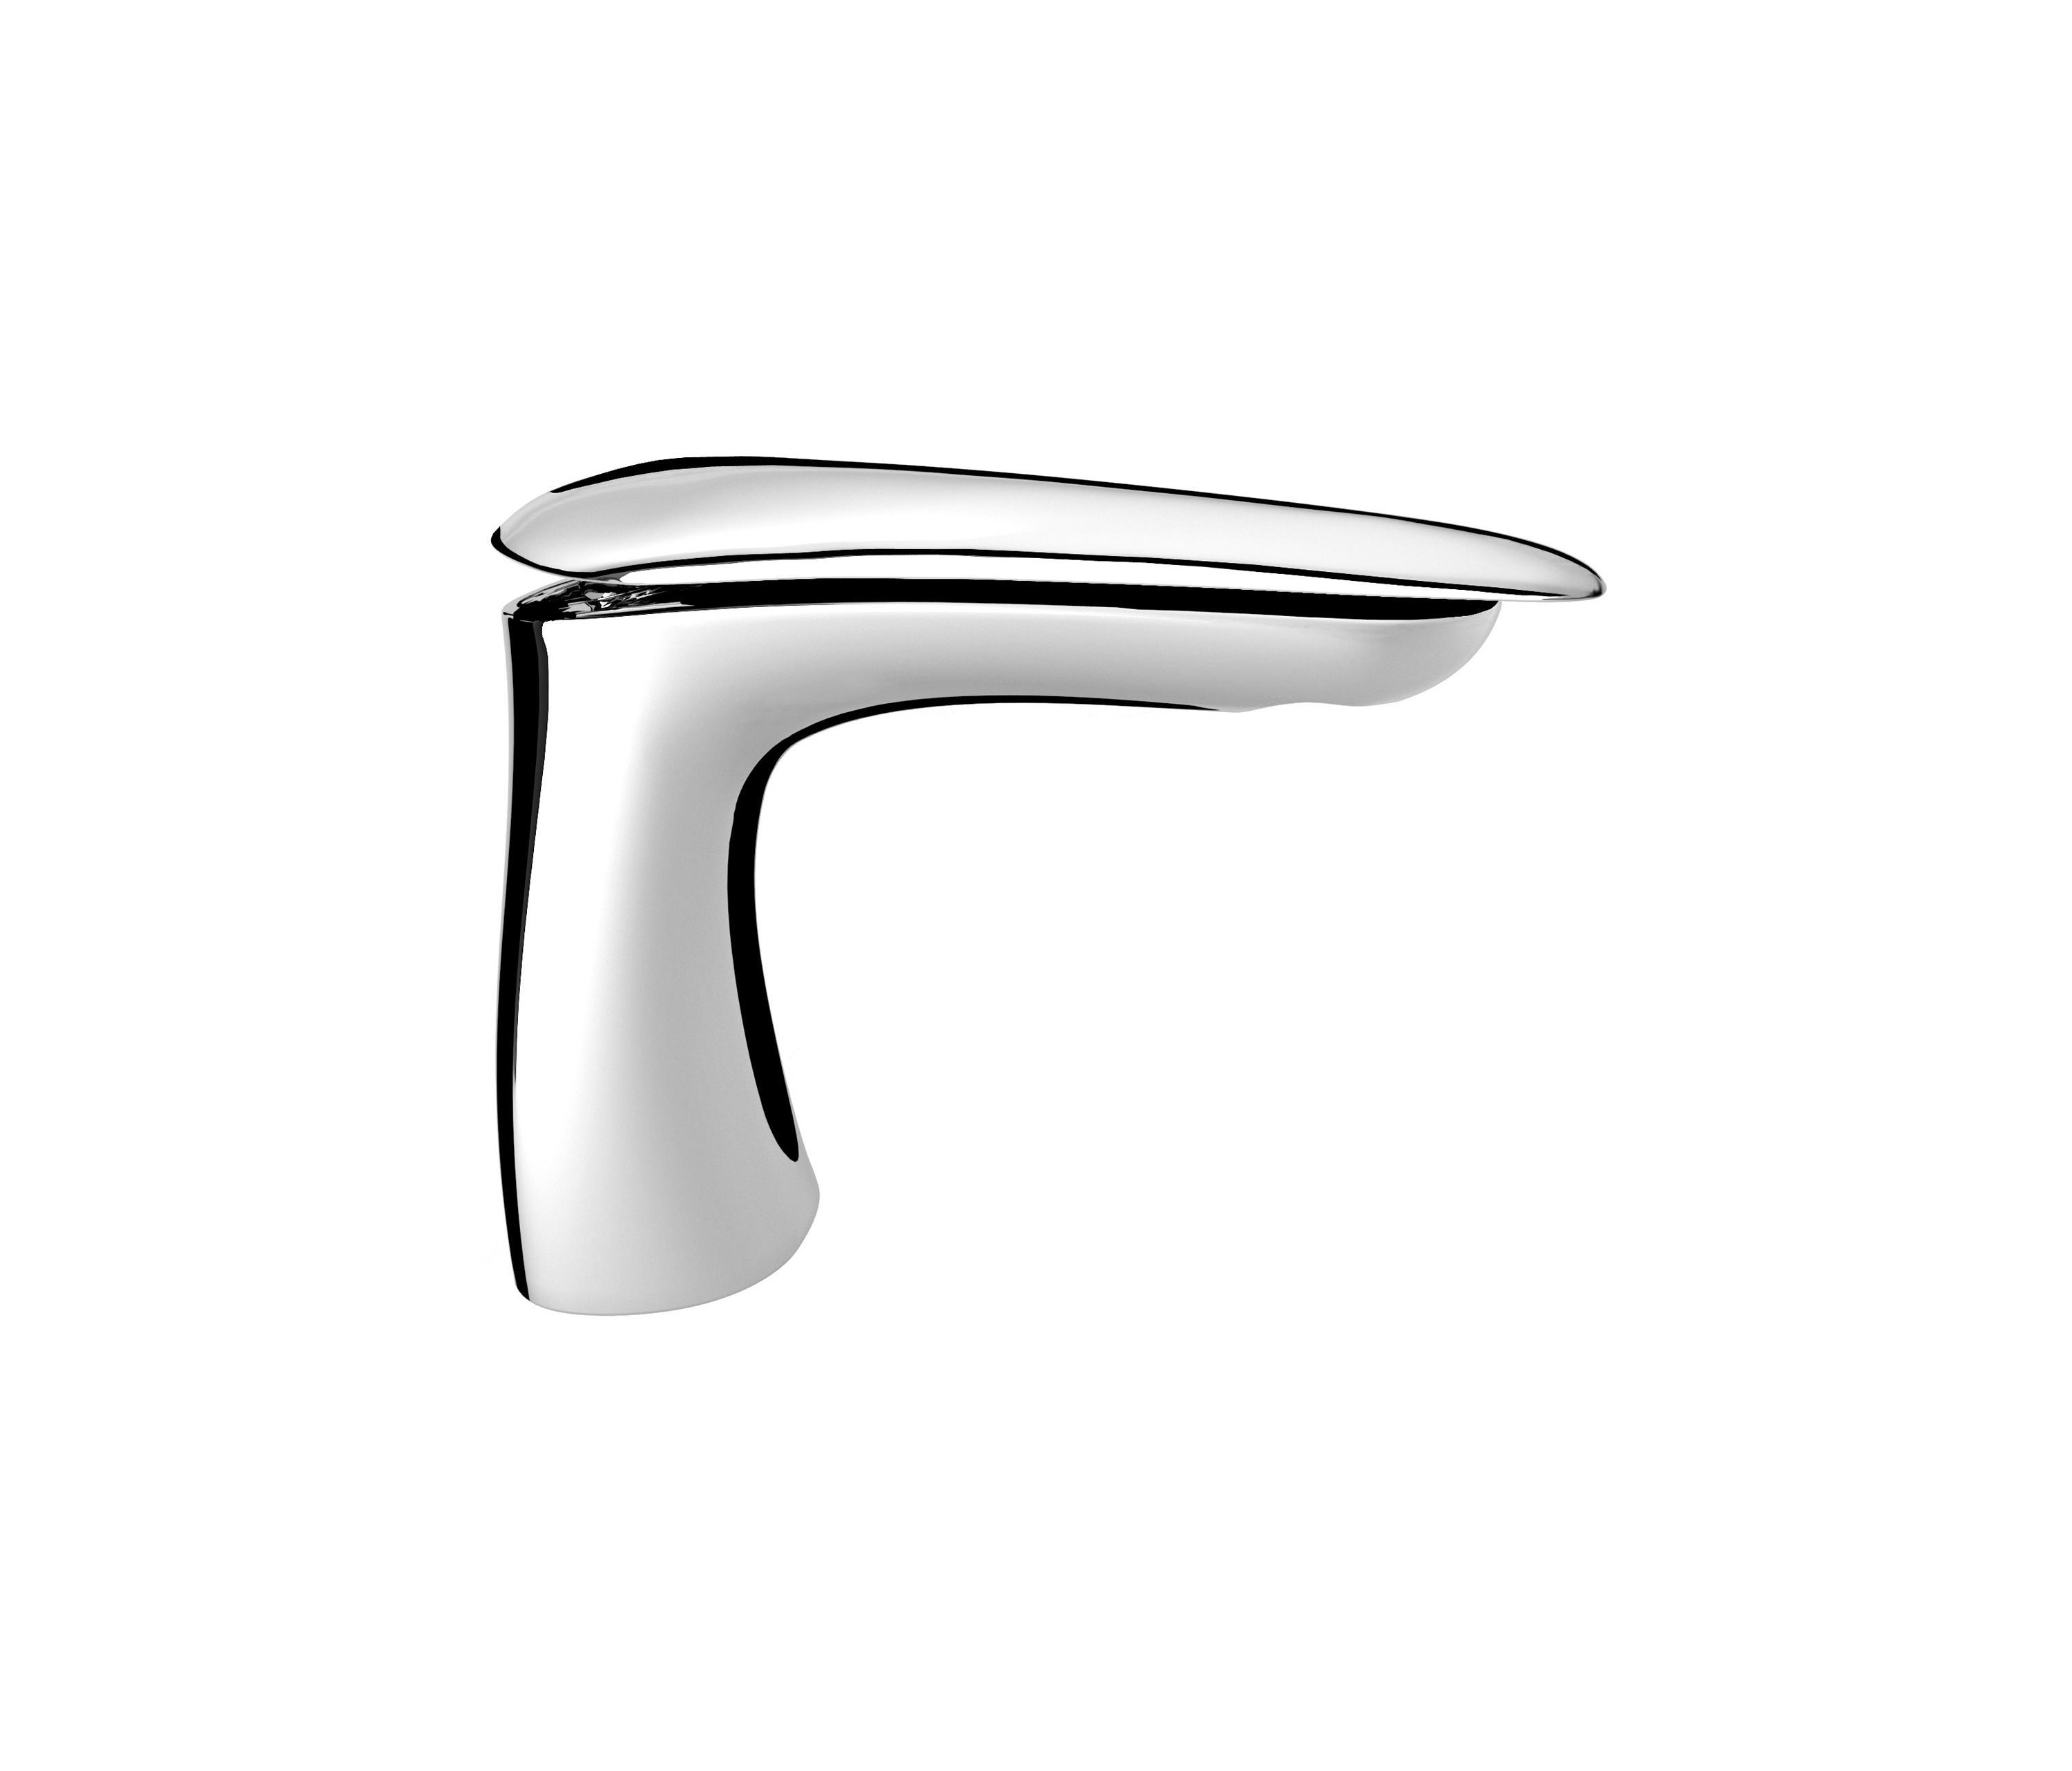 Miscelatori Fir Synergy Cover 94 Wash Basin Taps From Fir Italia Architonic